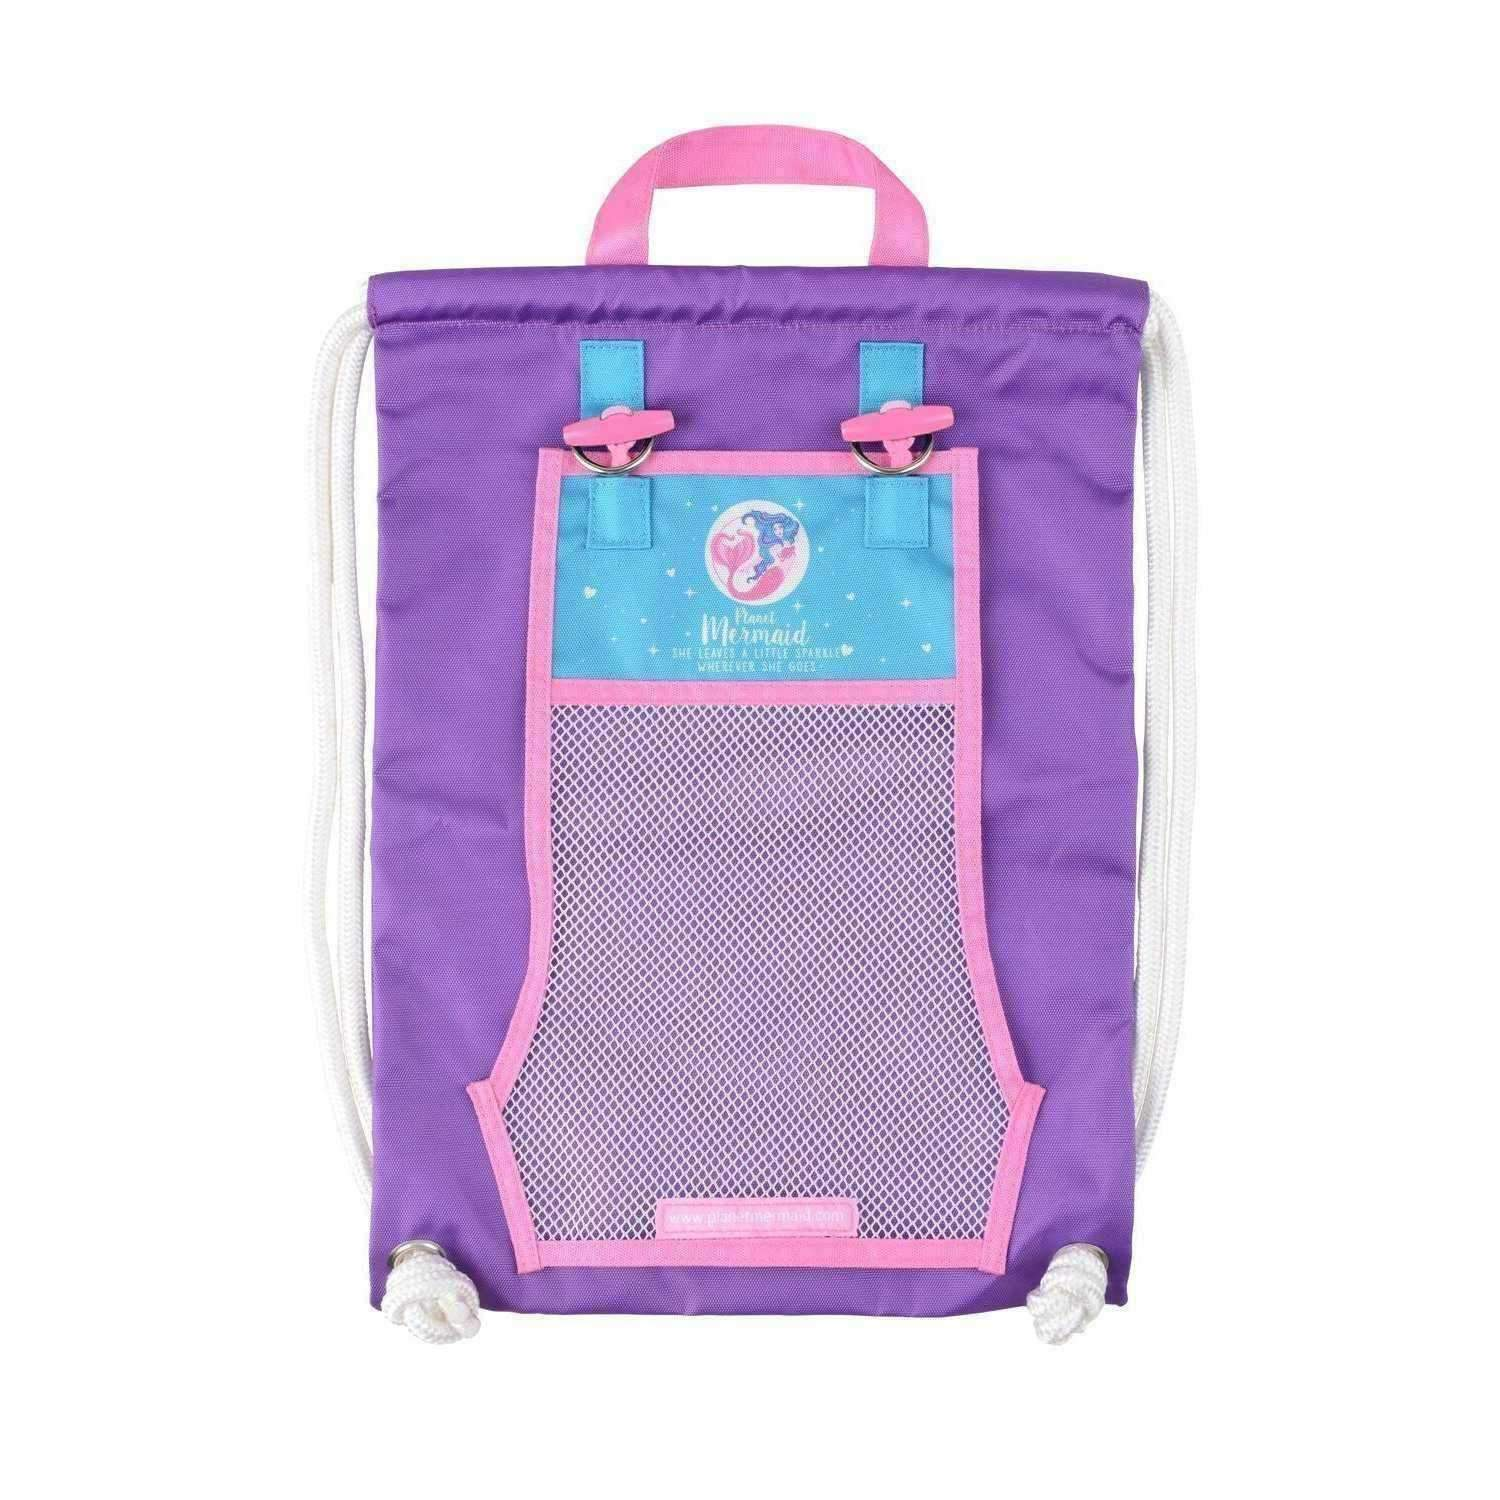 Magic Monofin Swim Bag - Mermaids Tail UK